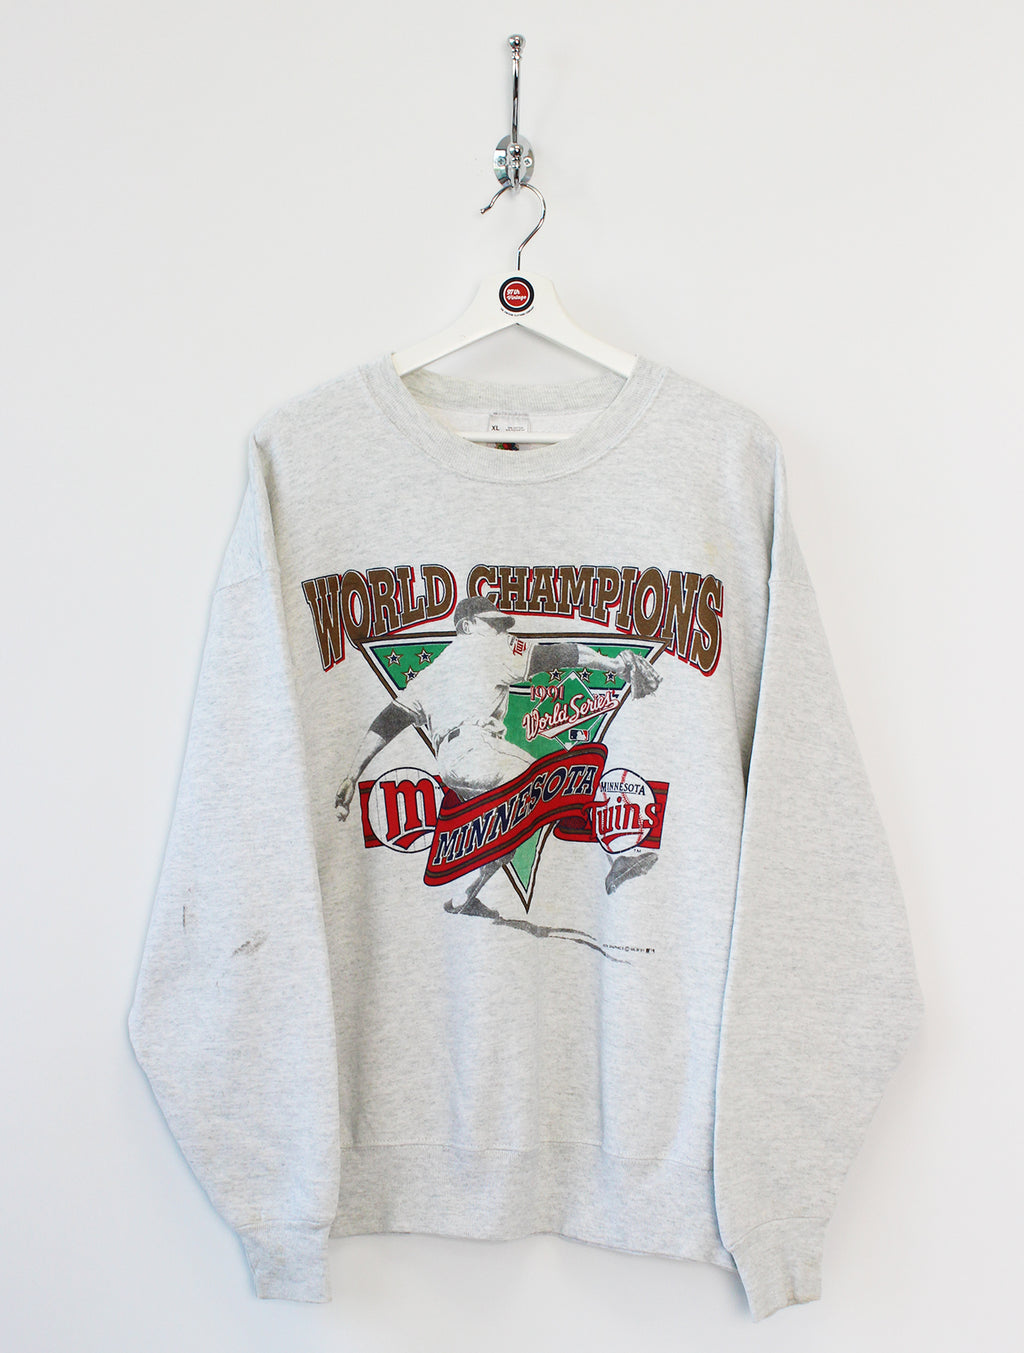 1991 Minnesota Twins MLB Sweatshirt (XL)